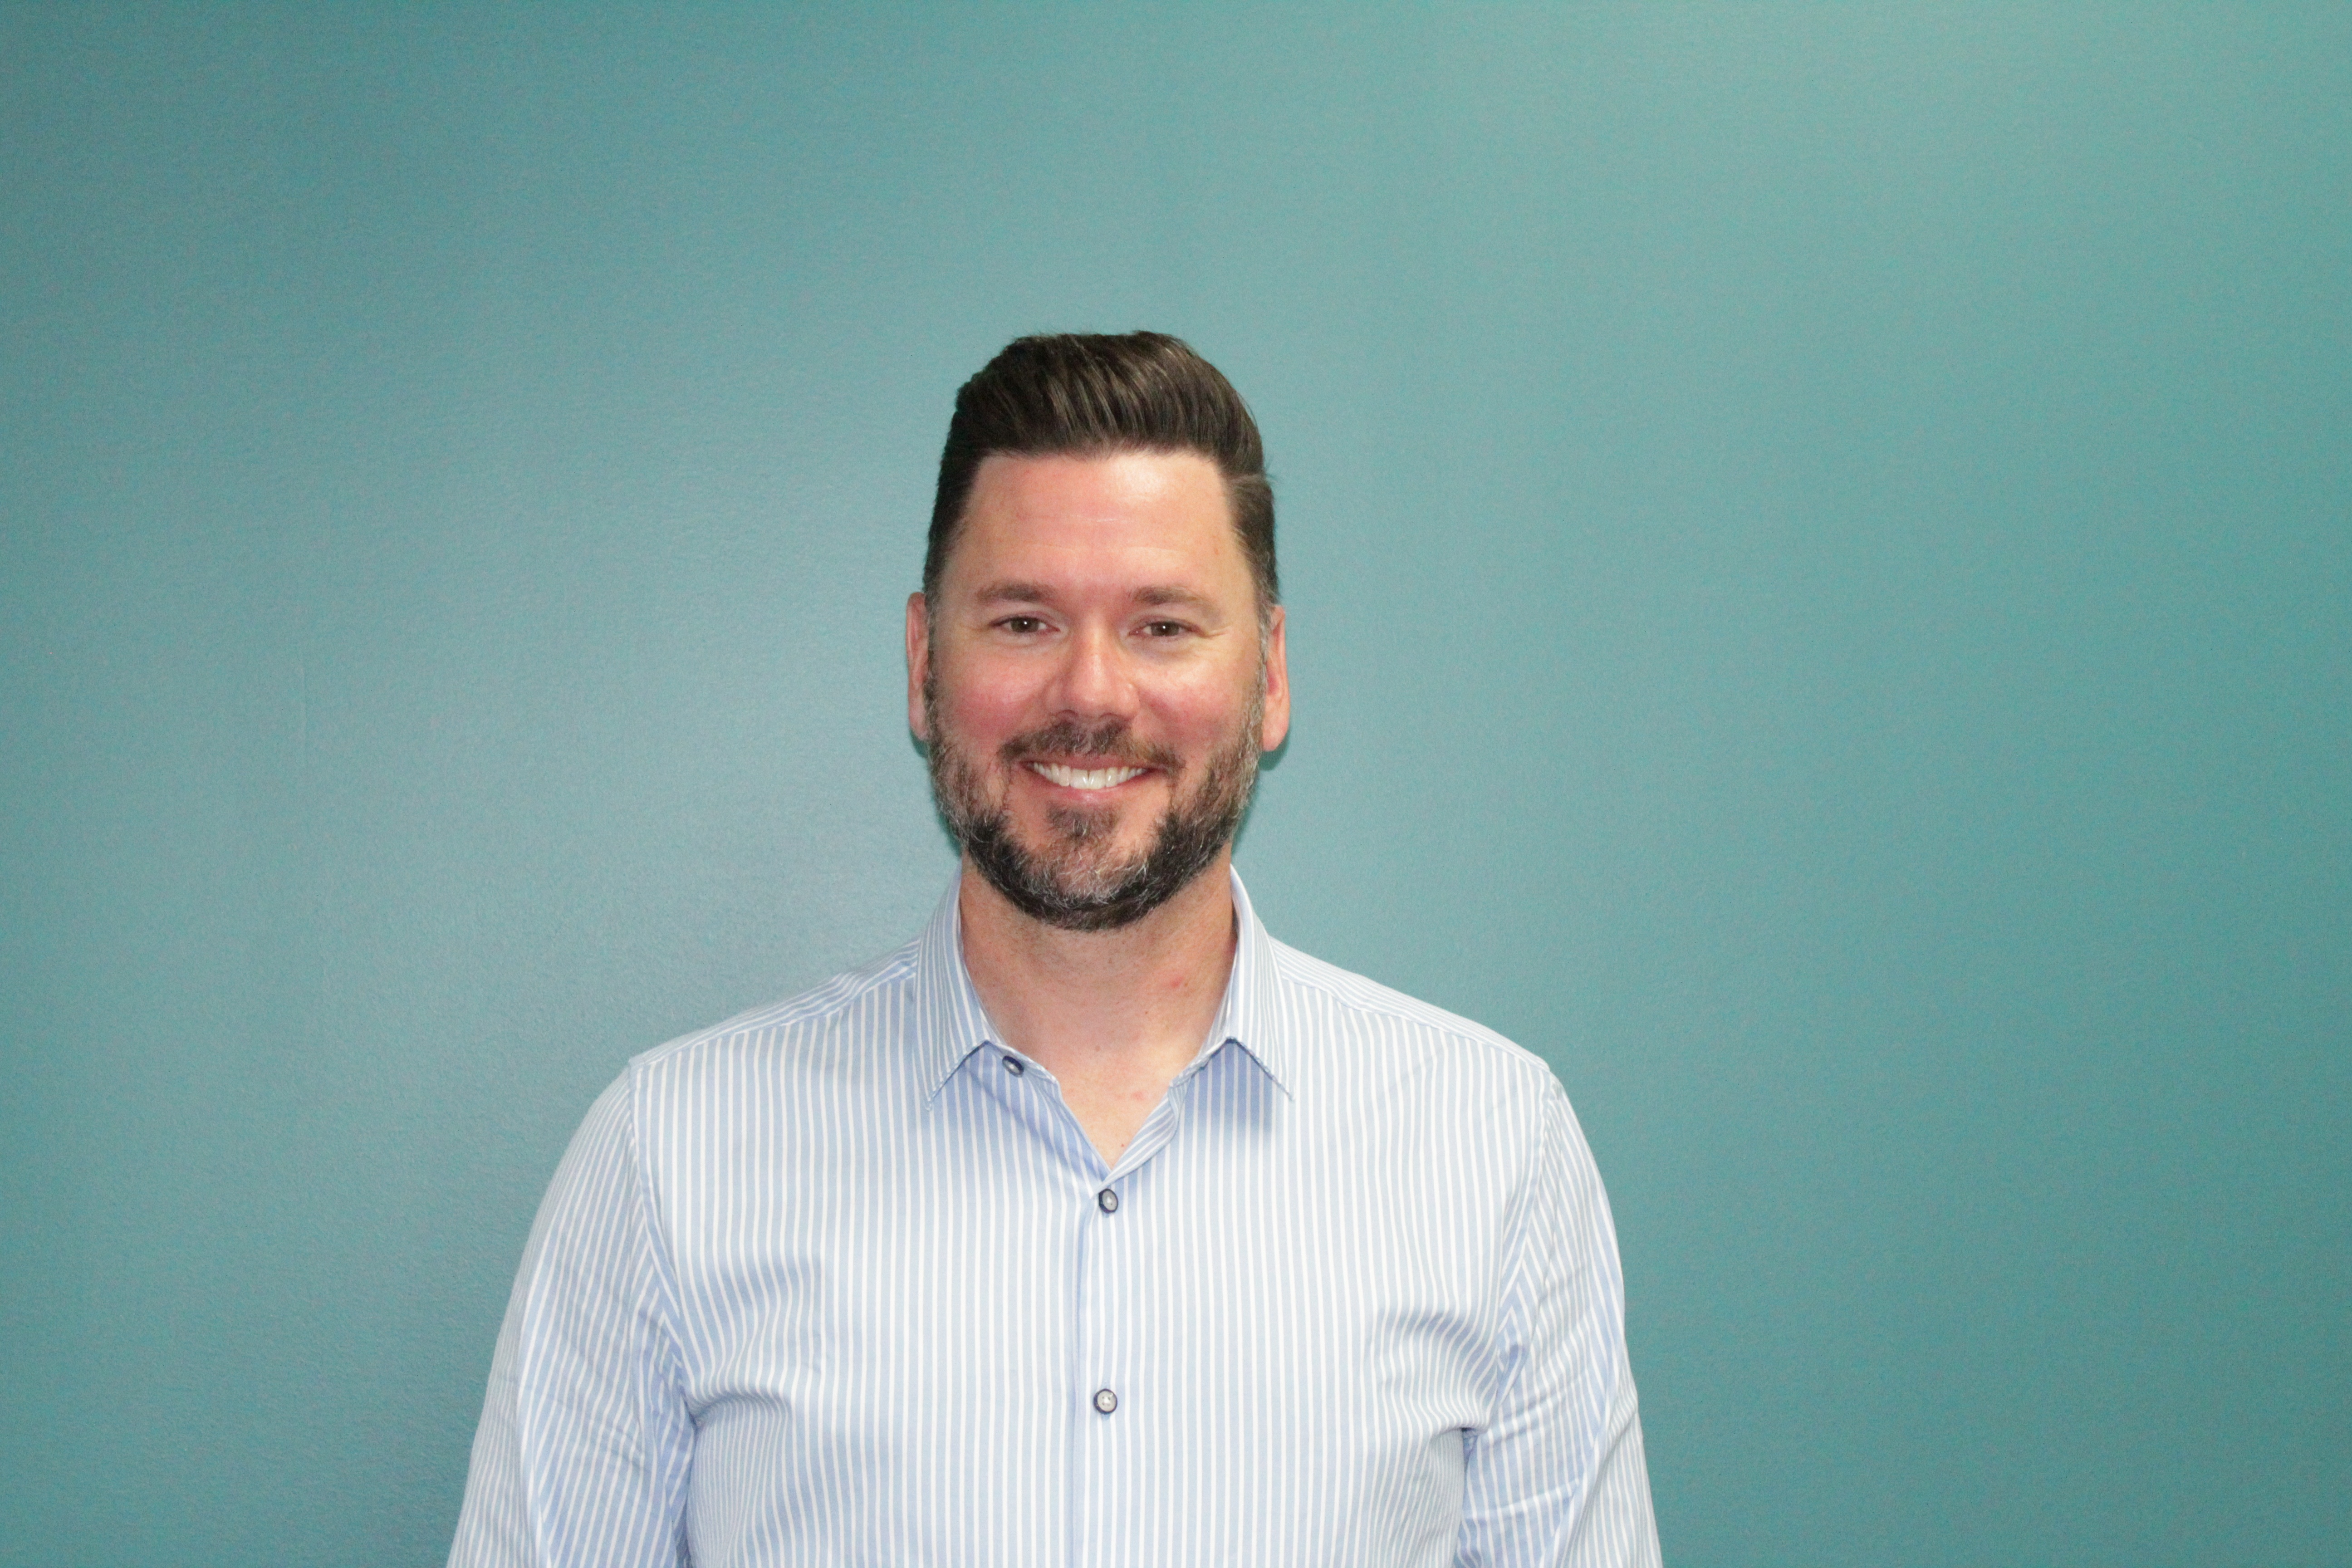 Travis Gibbons, Manager of Customer Support